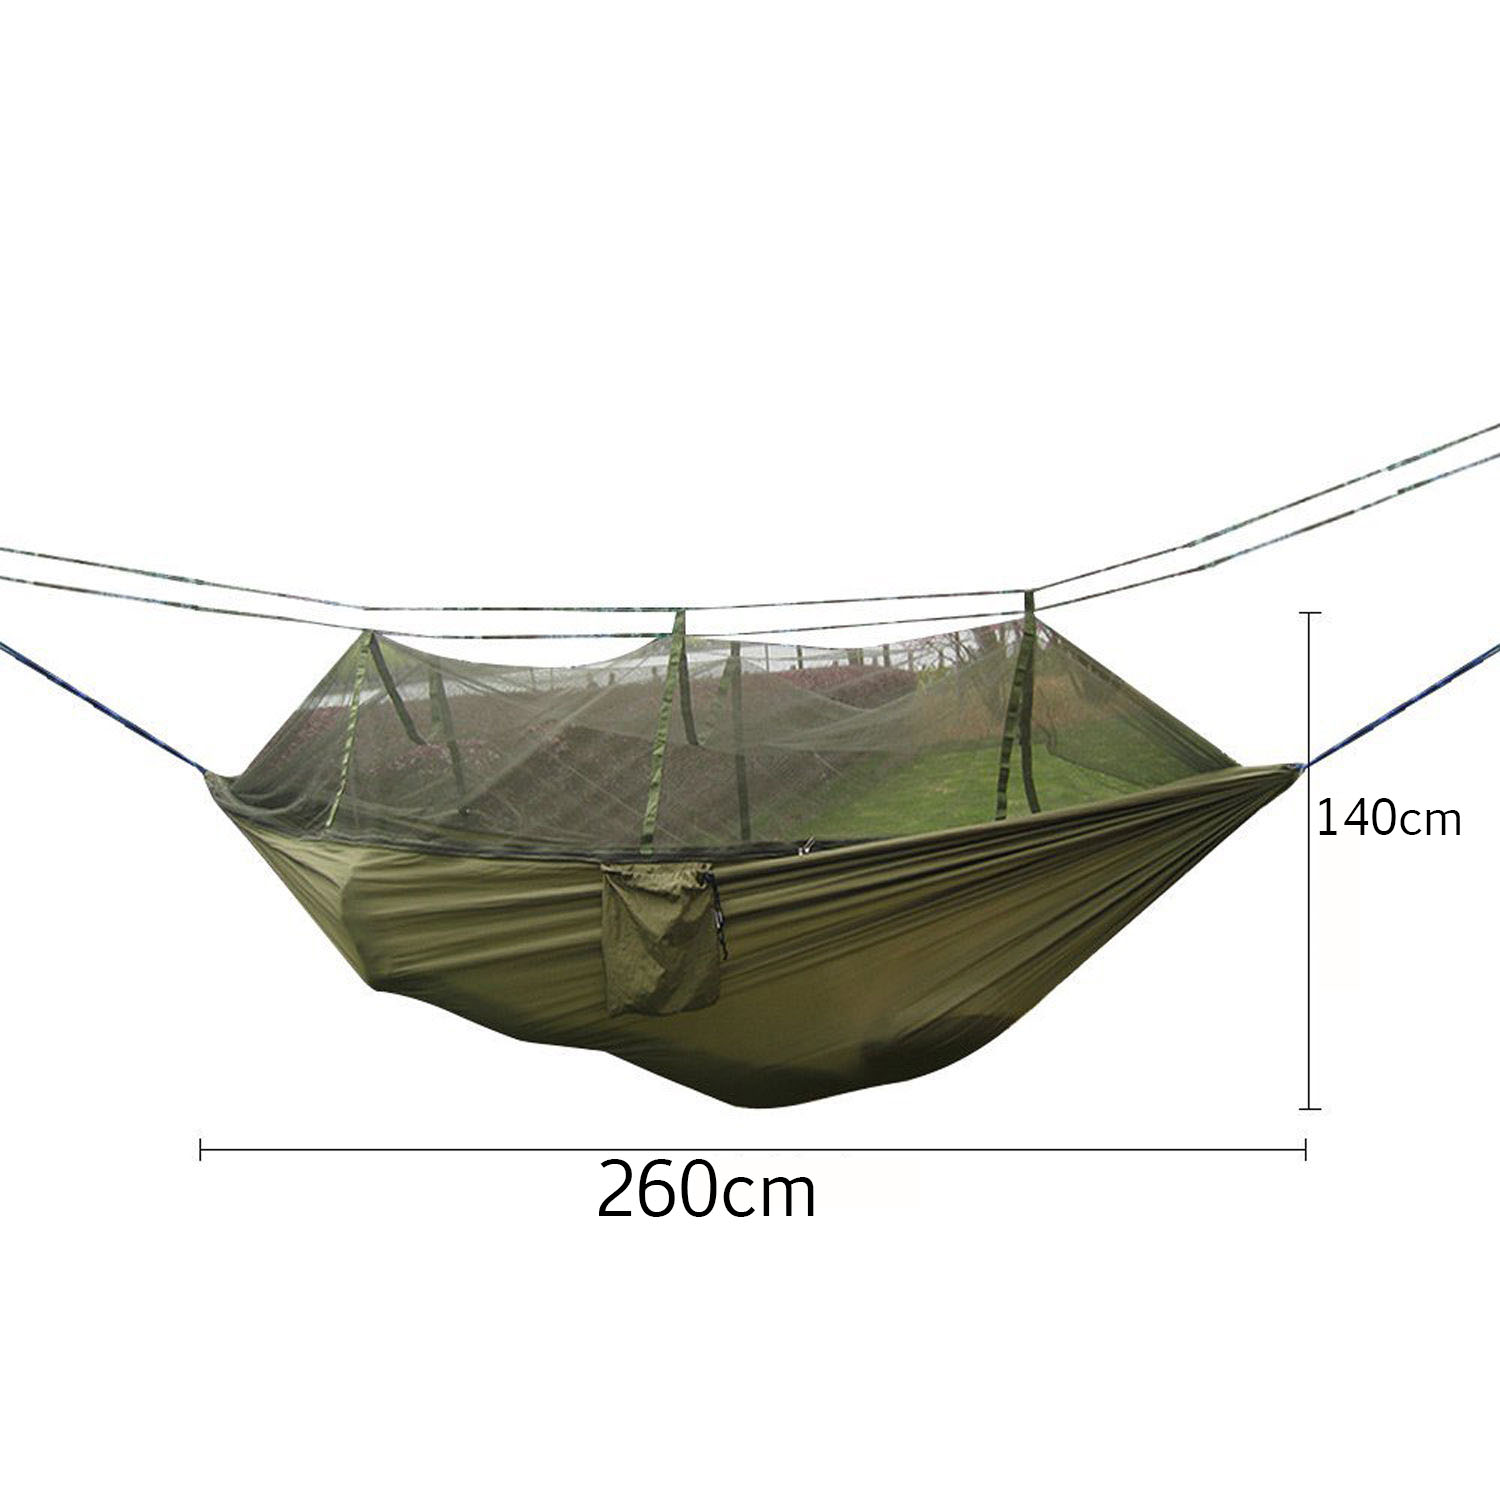 511b298d2f Camping Tent Portable Outdoor Mosquito Net Hammock Hanging Bed Sleeping  Swing